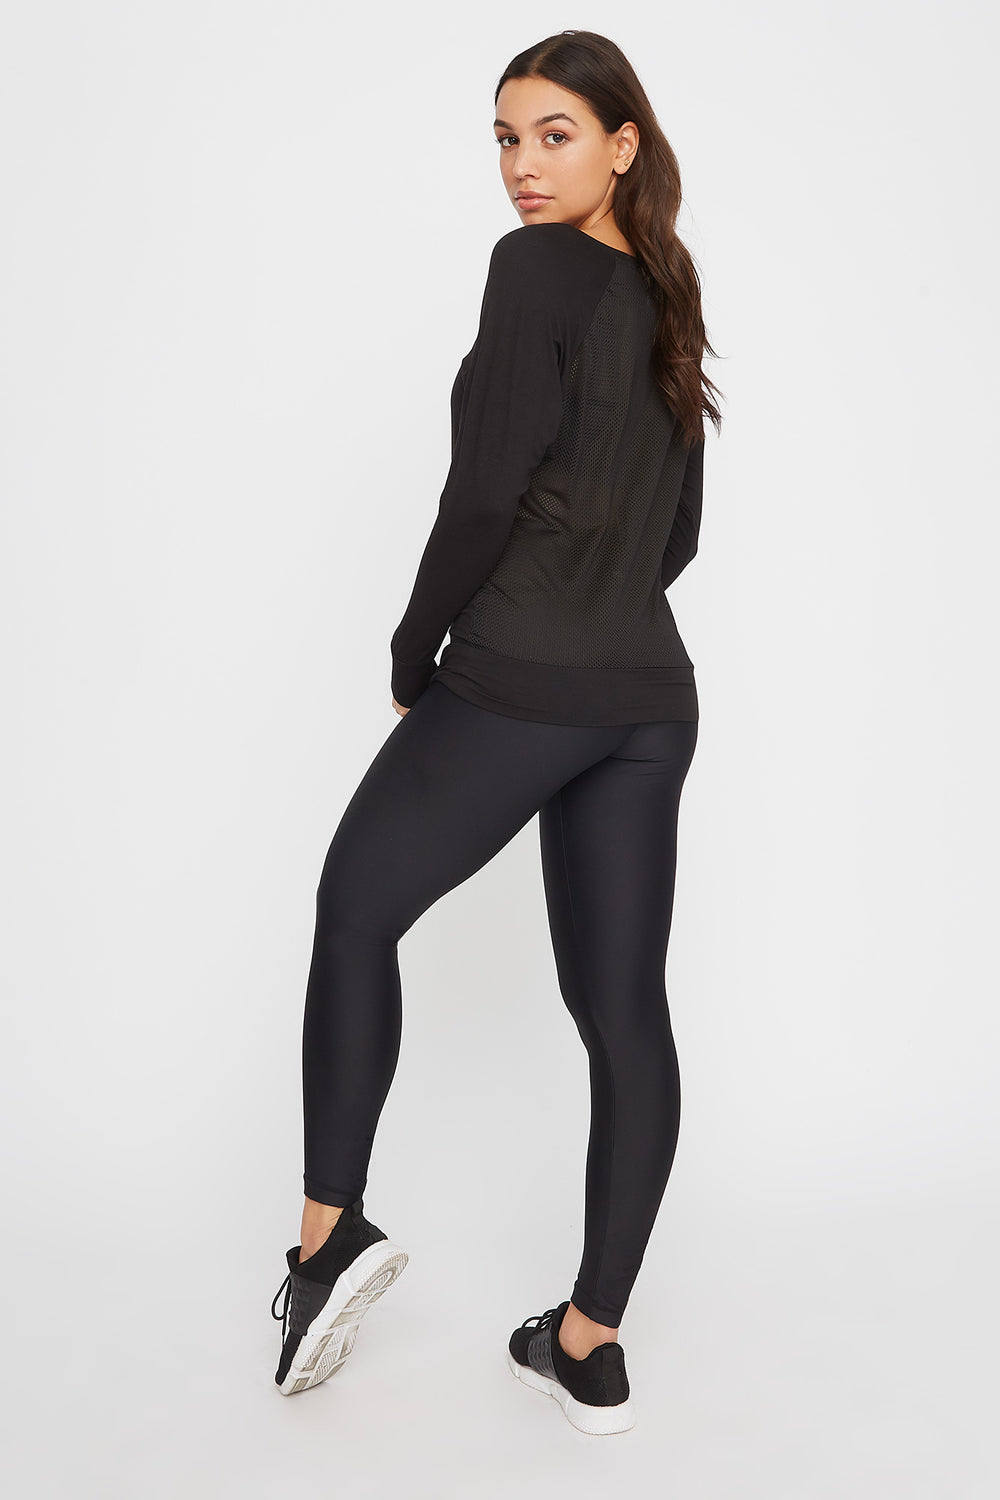 Soft Mesh Back Crewneck Active Long Sleeve Black